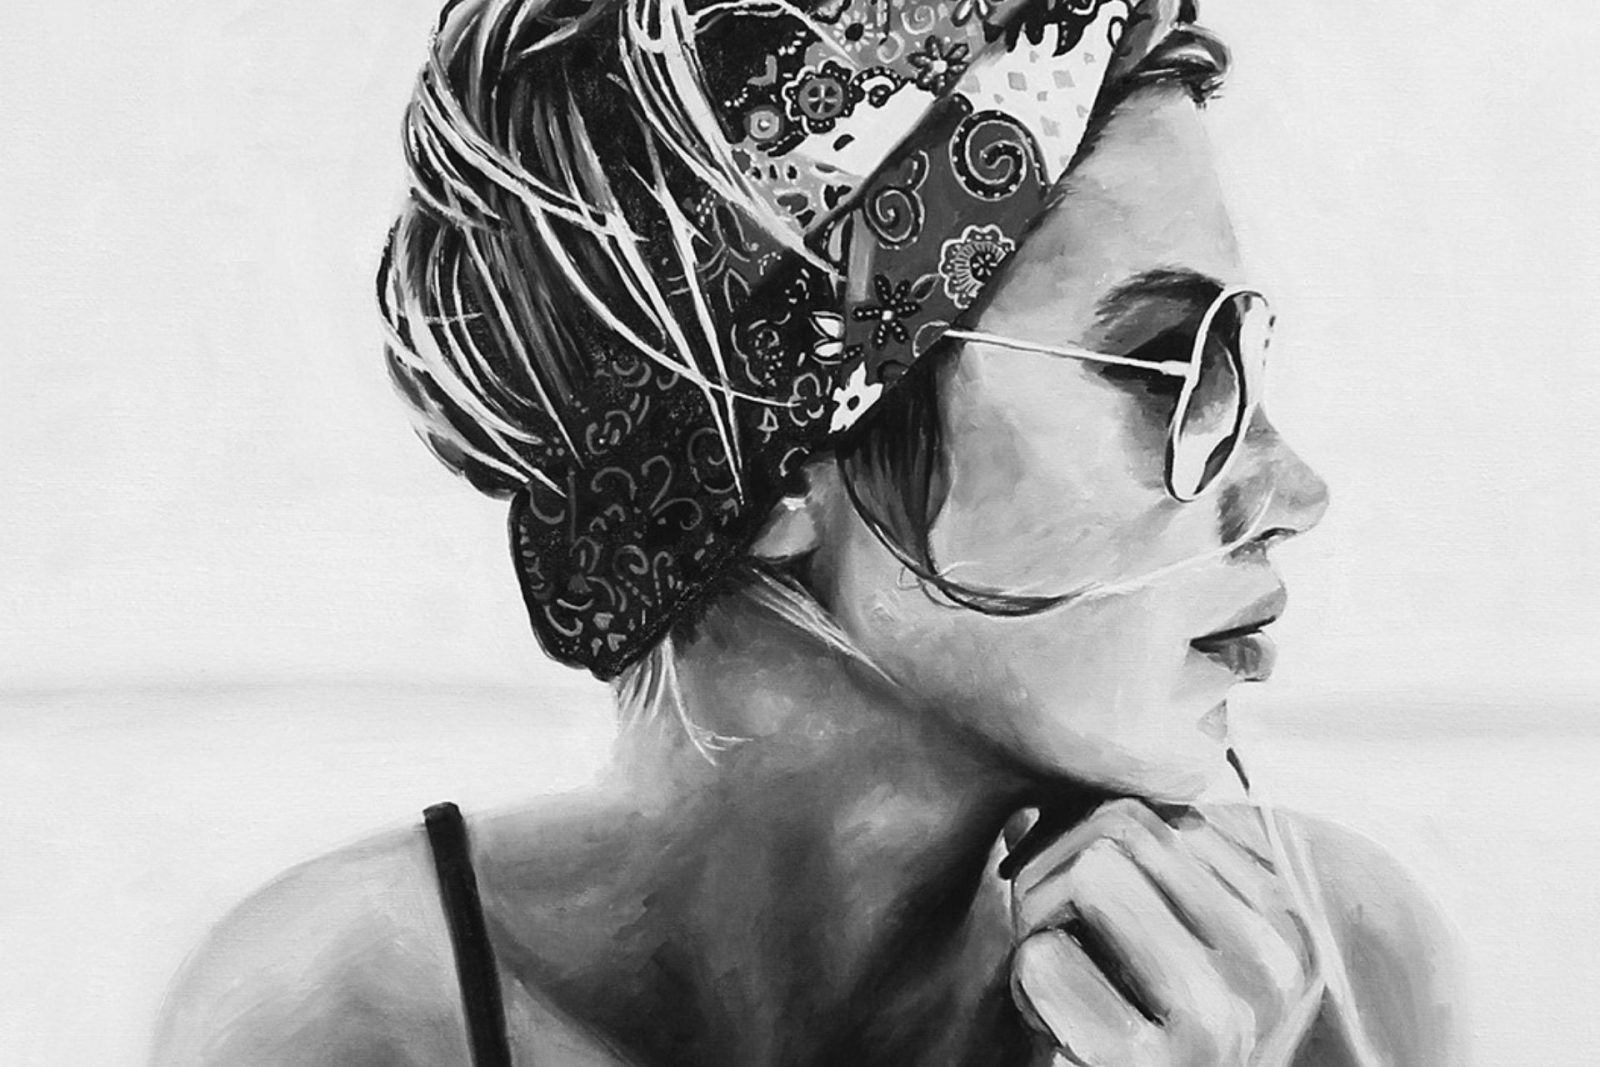 black and white figurative paintings by Cindy Press